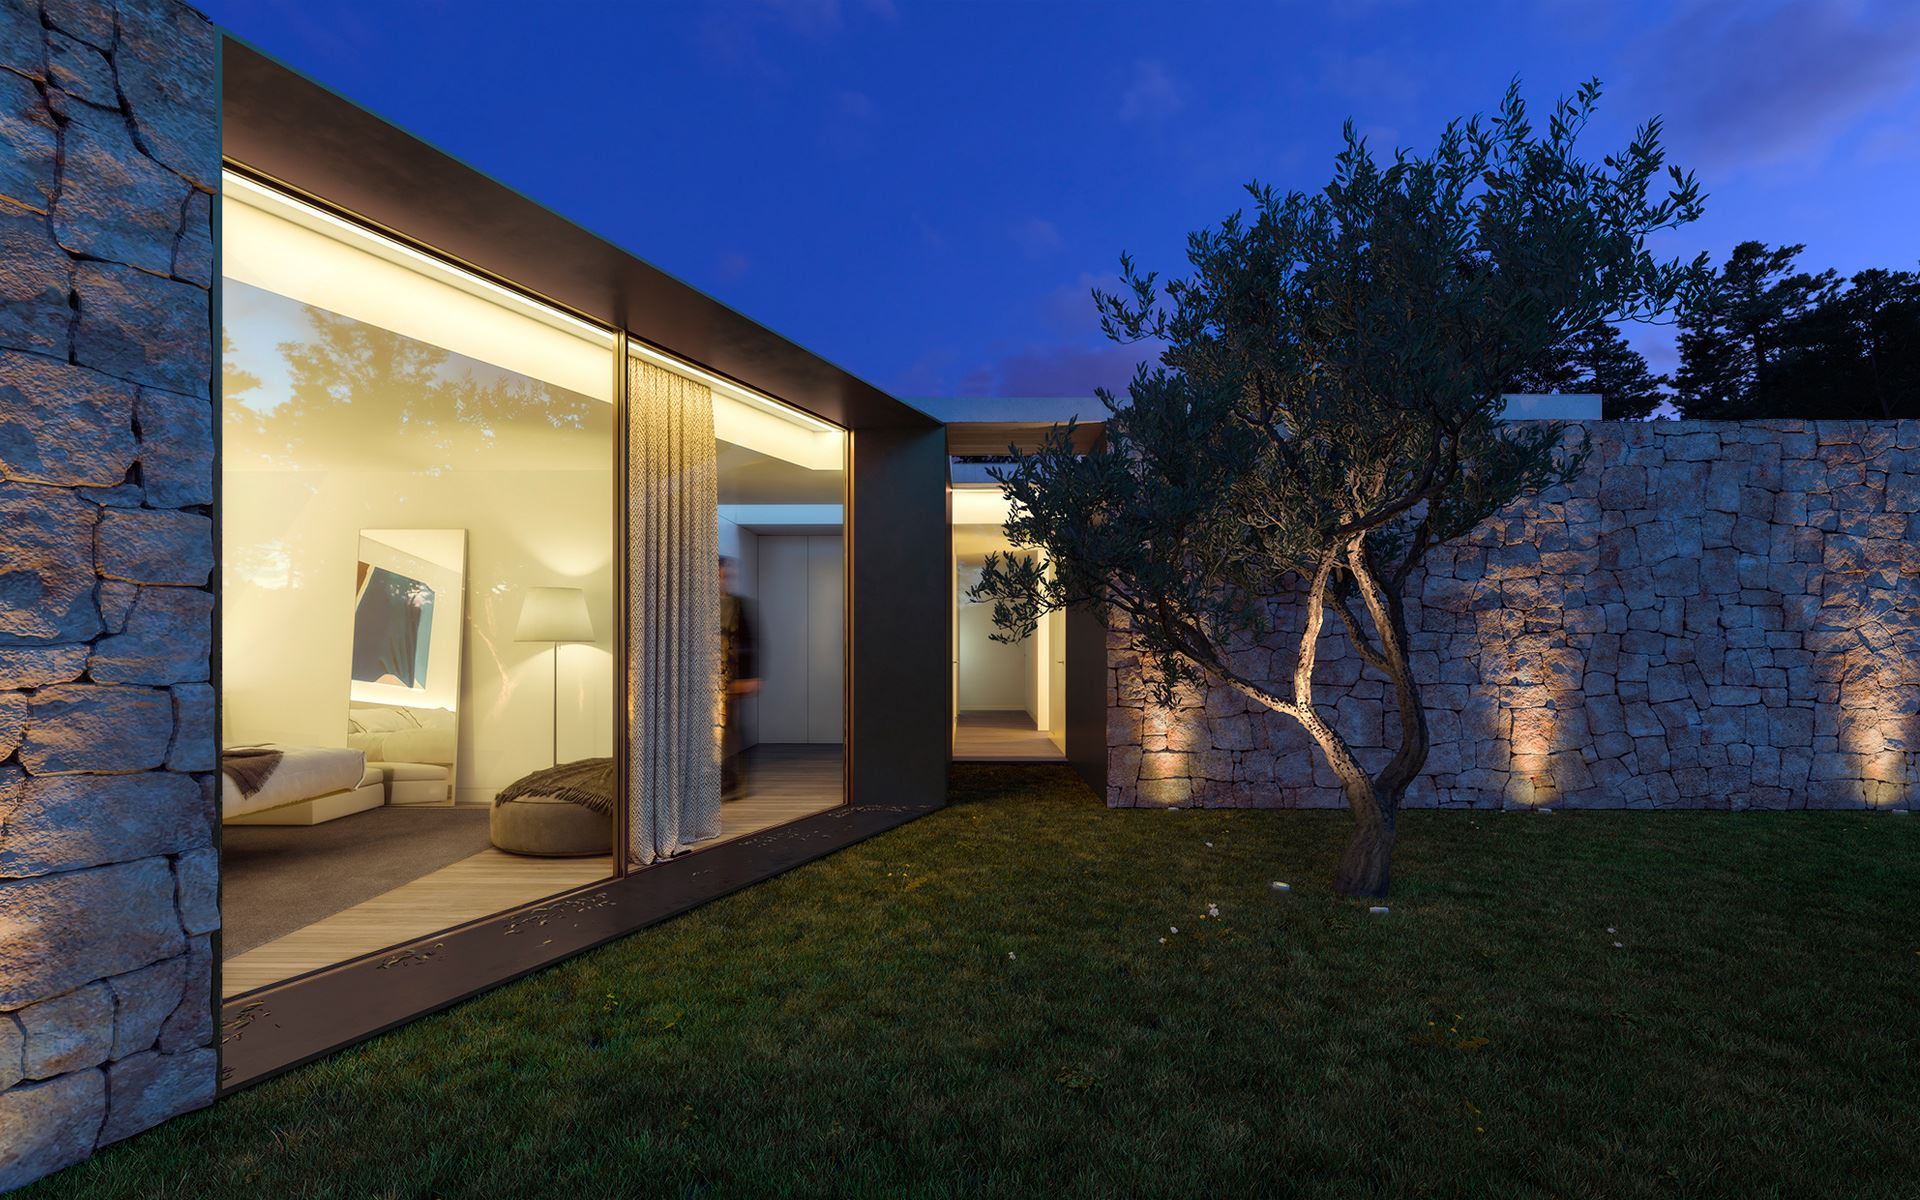 House in Valencia - Gallardo Llopis Architect